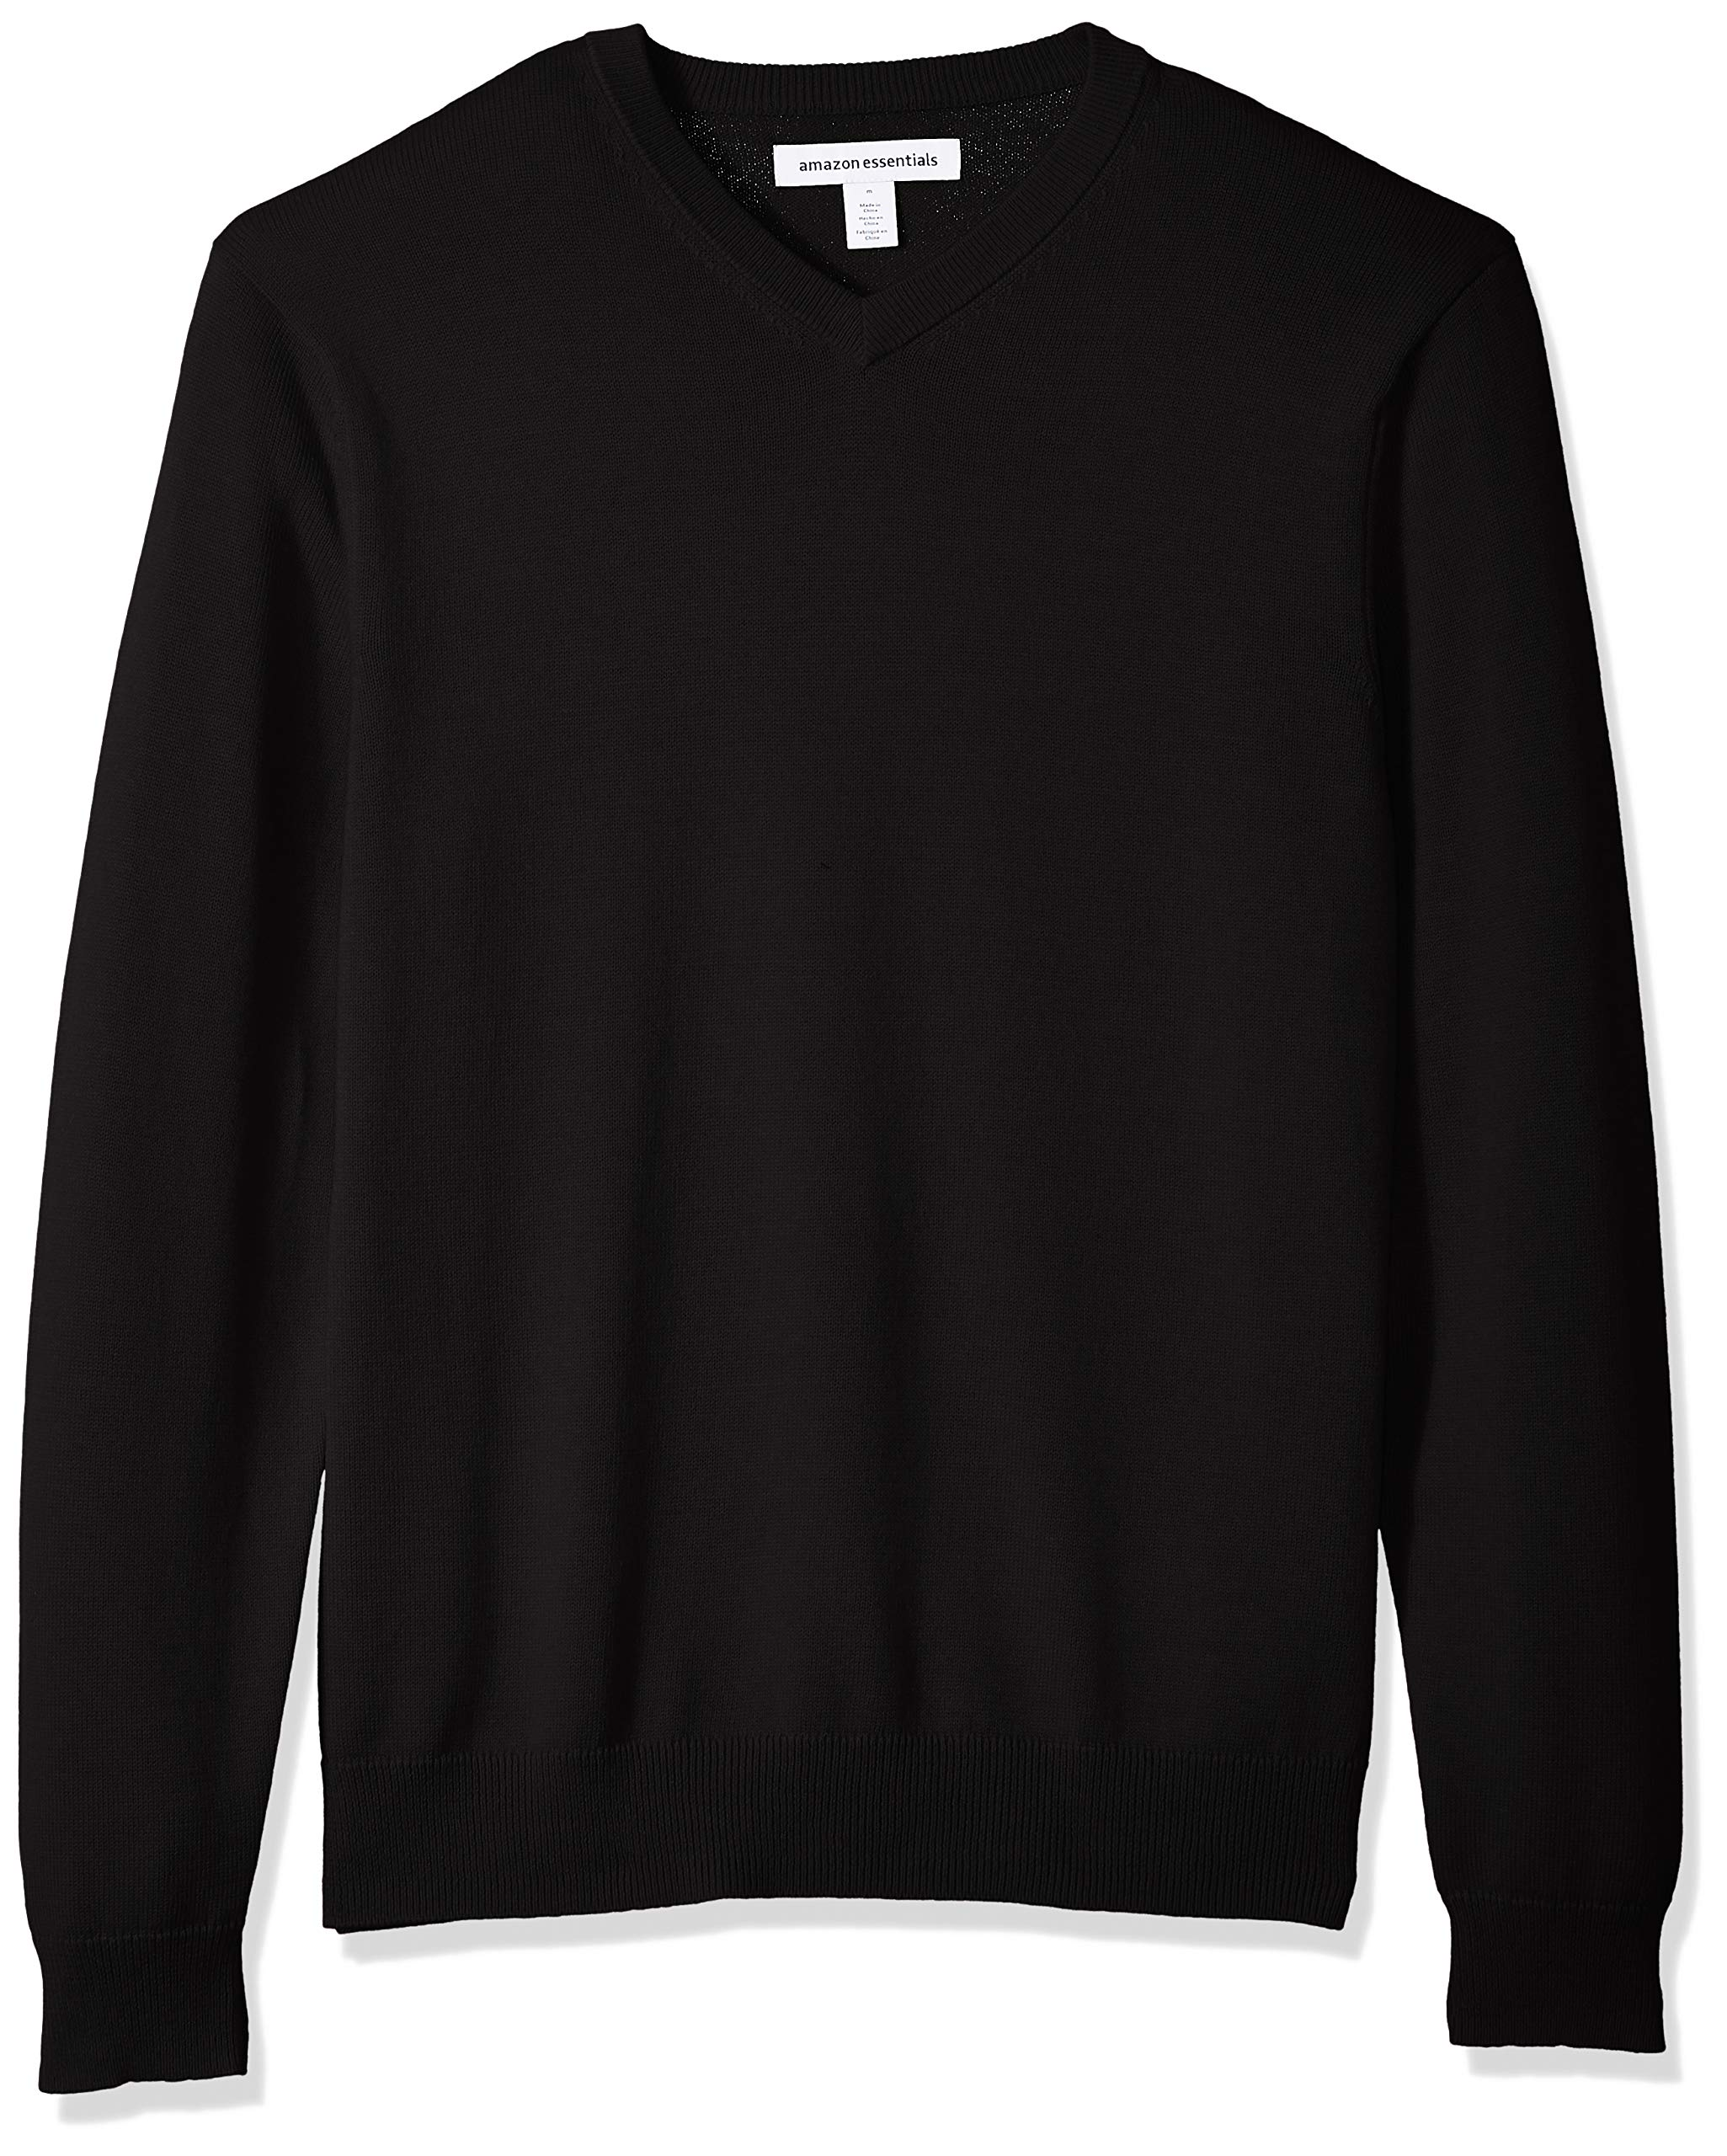 Amazon Essentials Men's Standard V-Neck Sweater, Black, X-Large